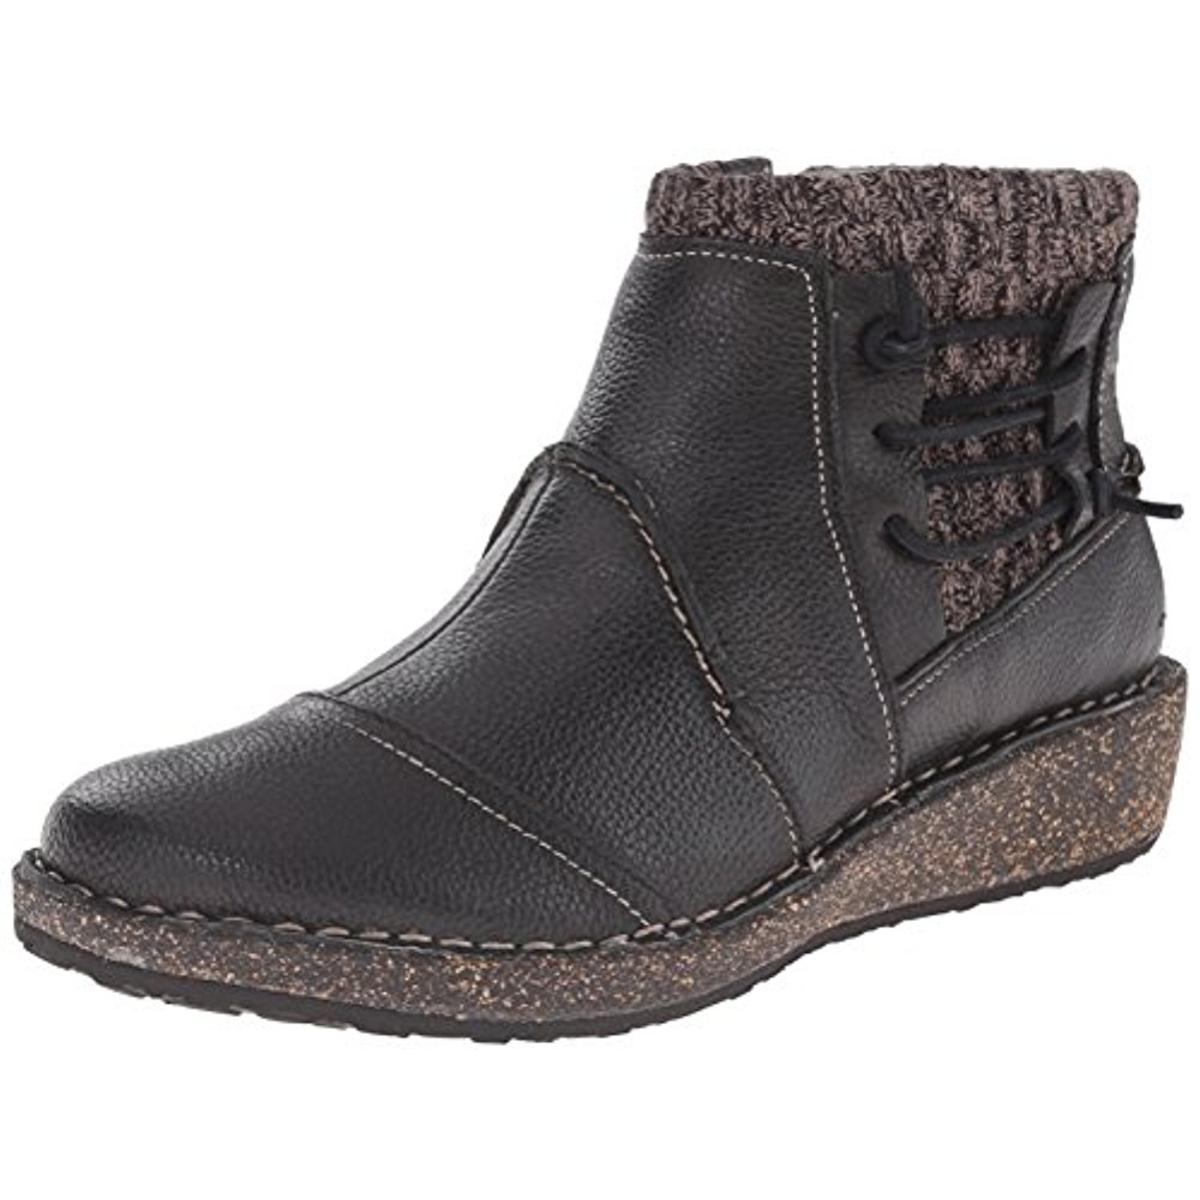 Aetrex Womens Tessa Leather Mixed Media Booties by Aetrex